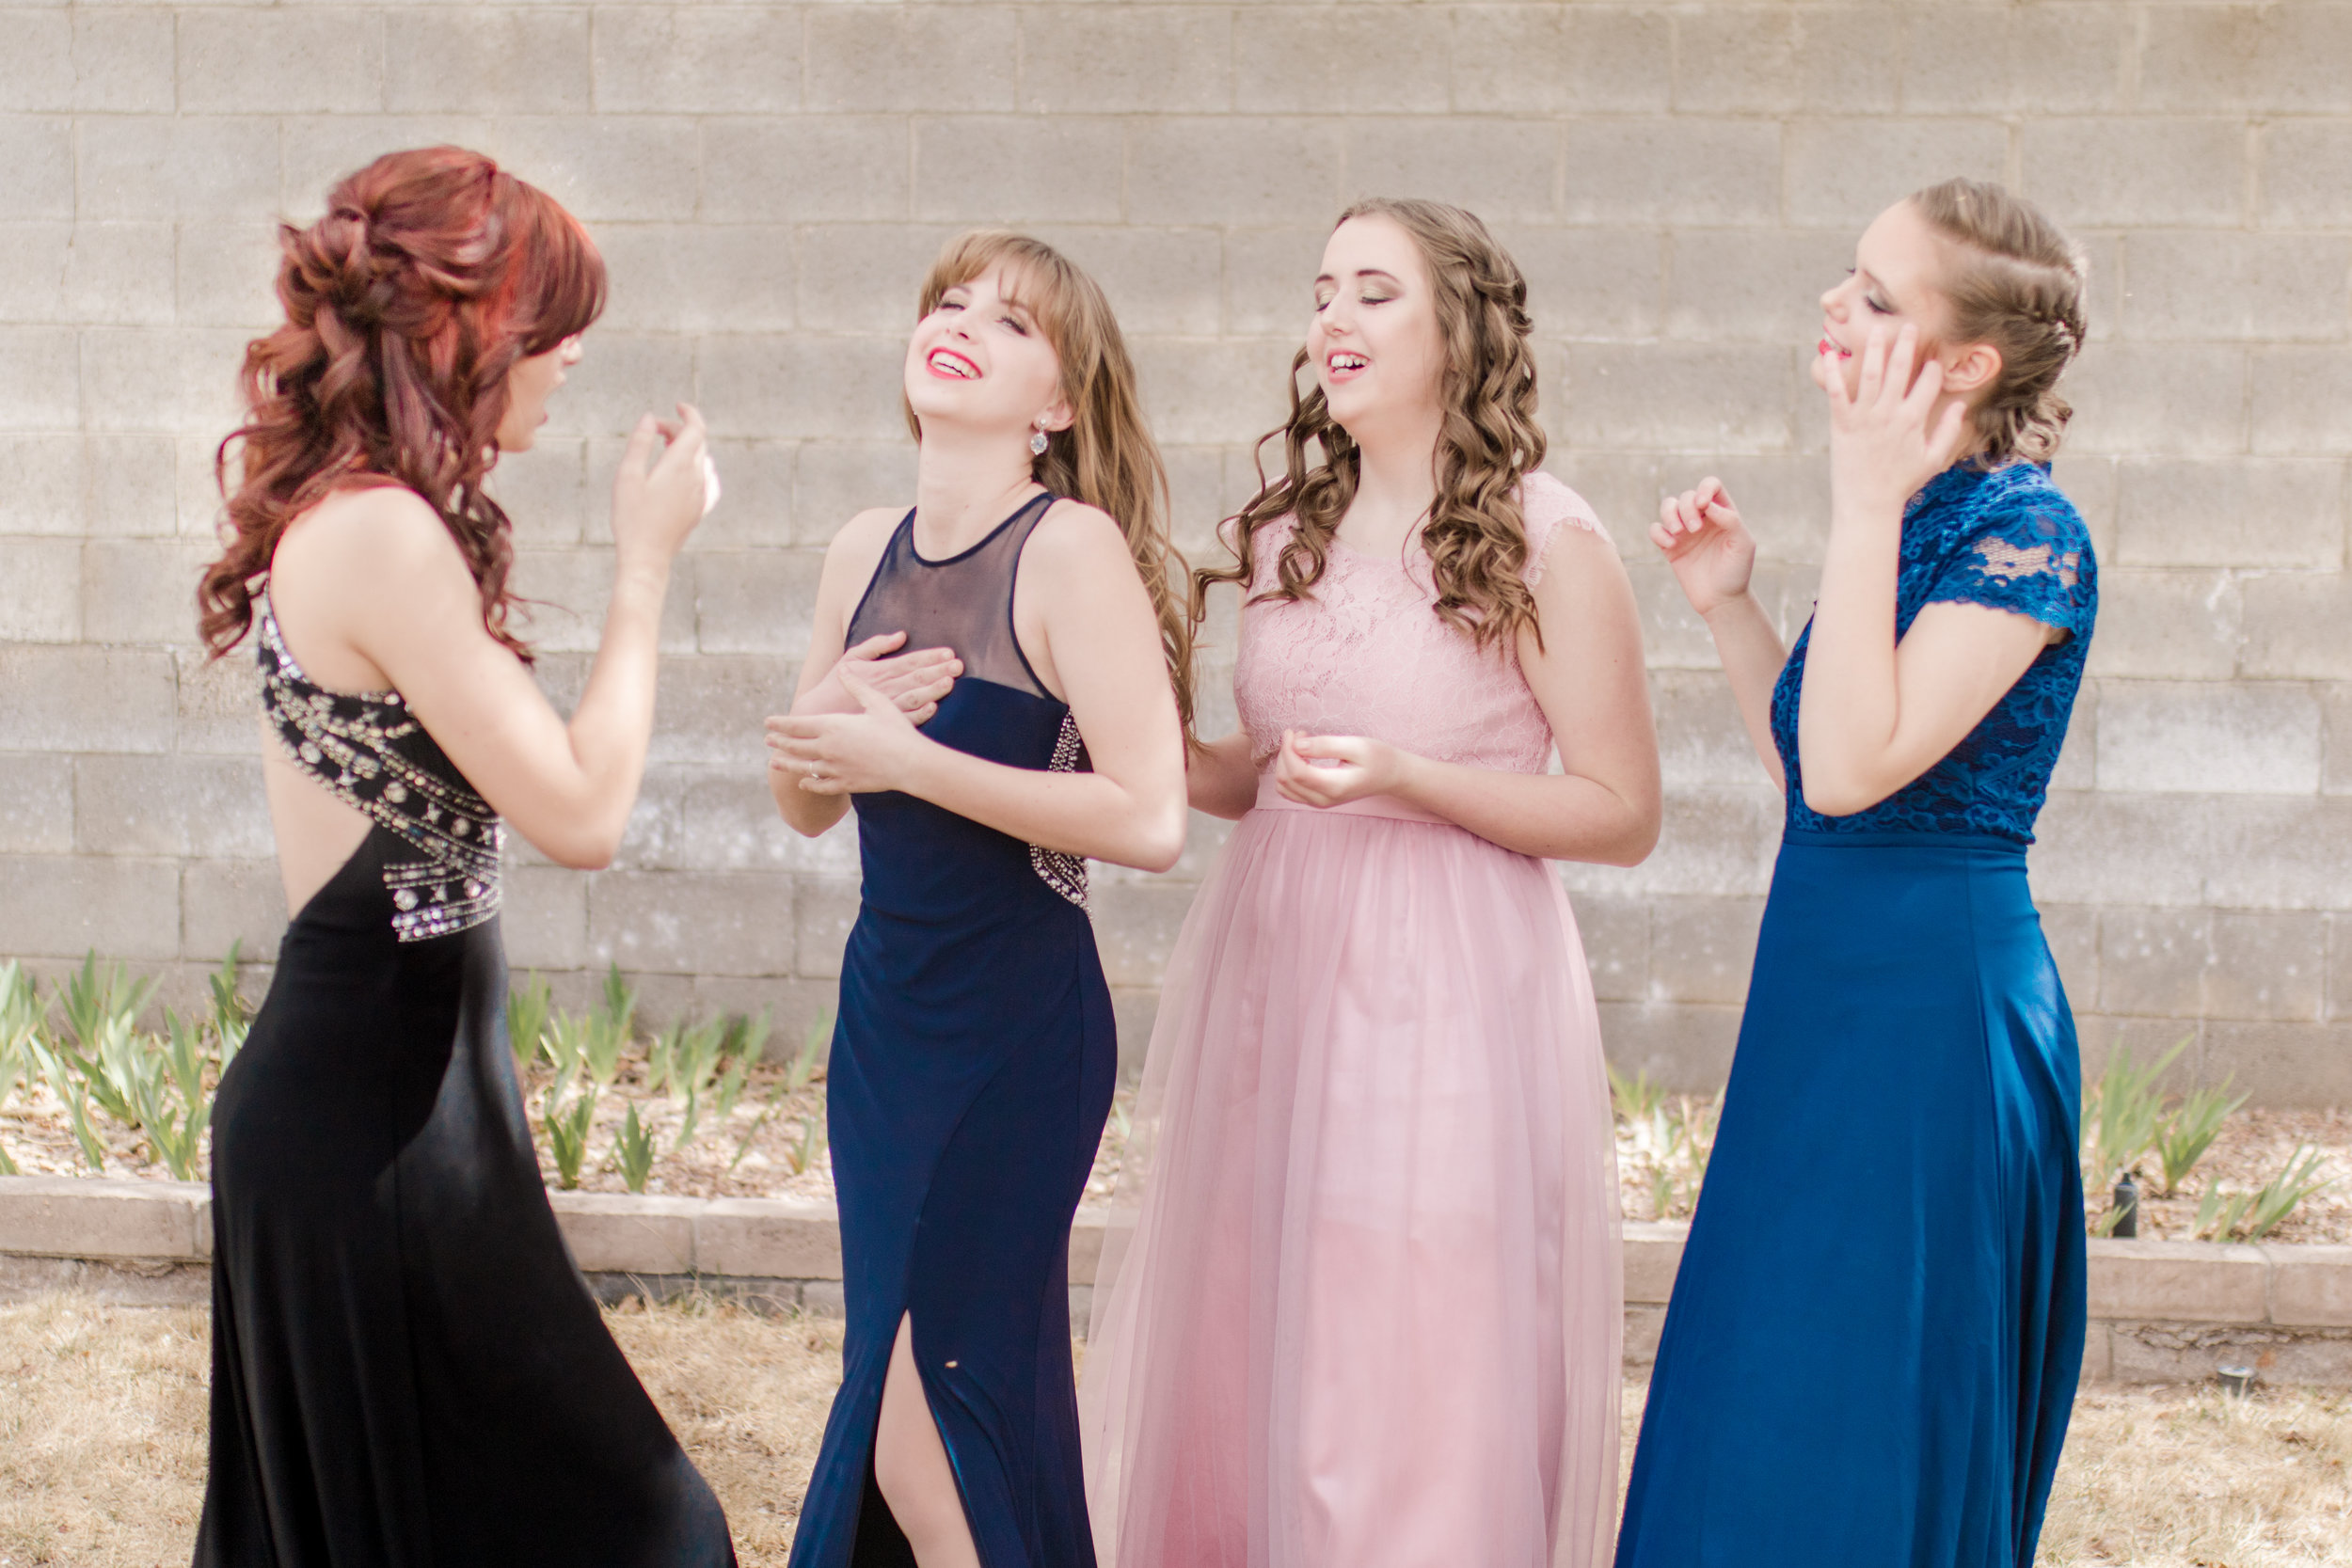 Senior Styled Shoot. Red carpet with glamour hair, makeup and dresses.